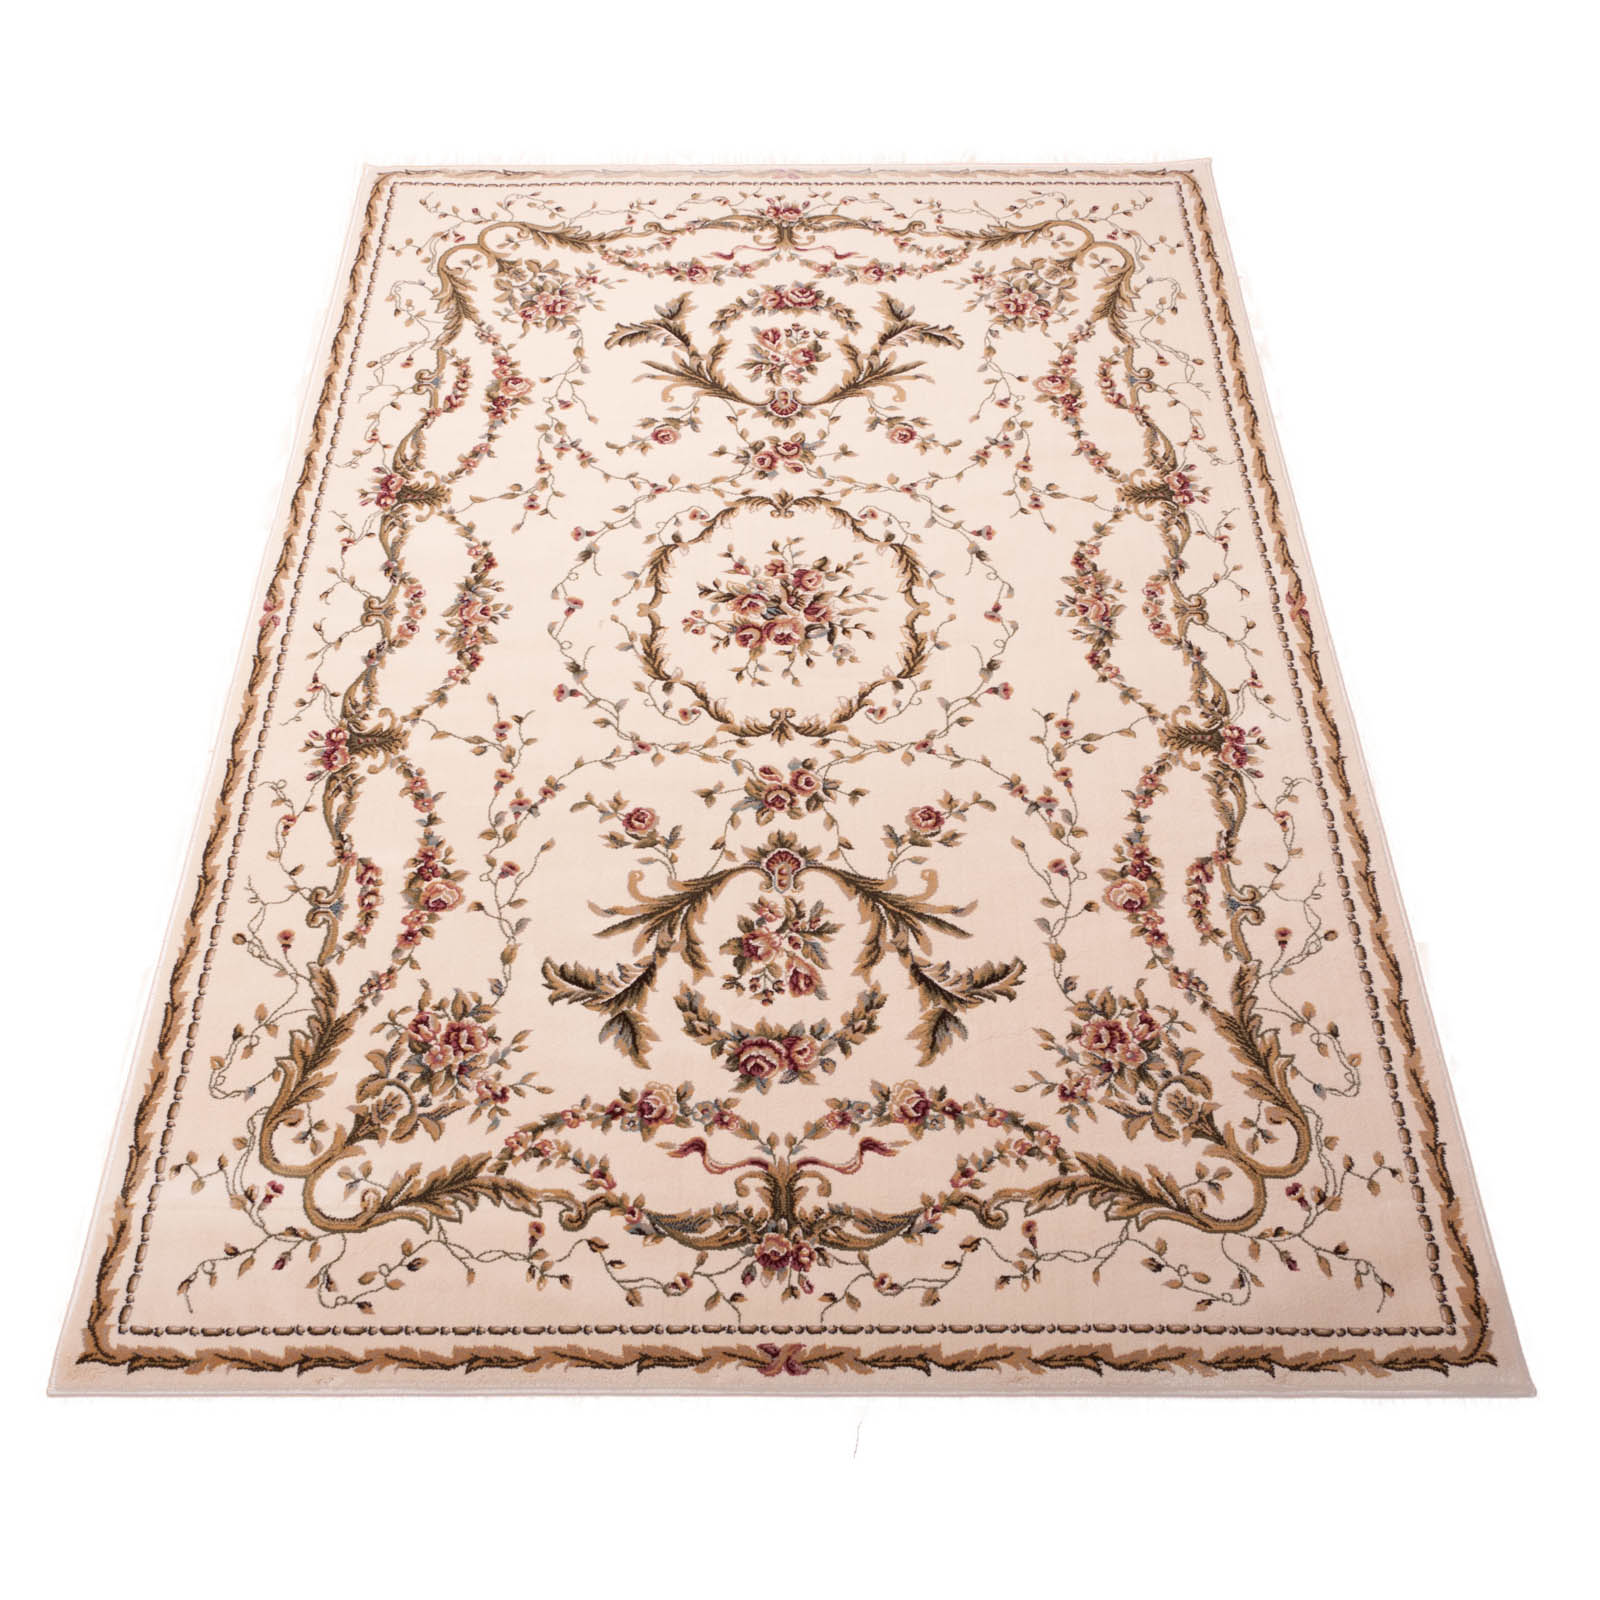 Bordeaux Rugs BOR01 in Ivory